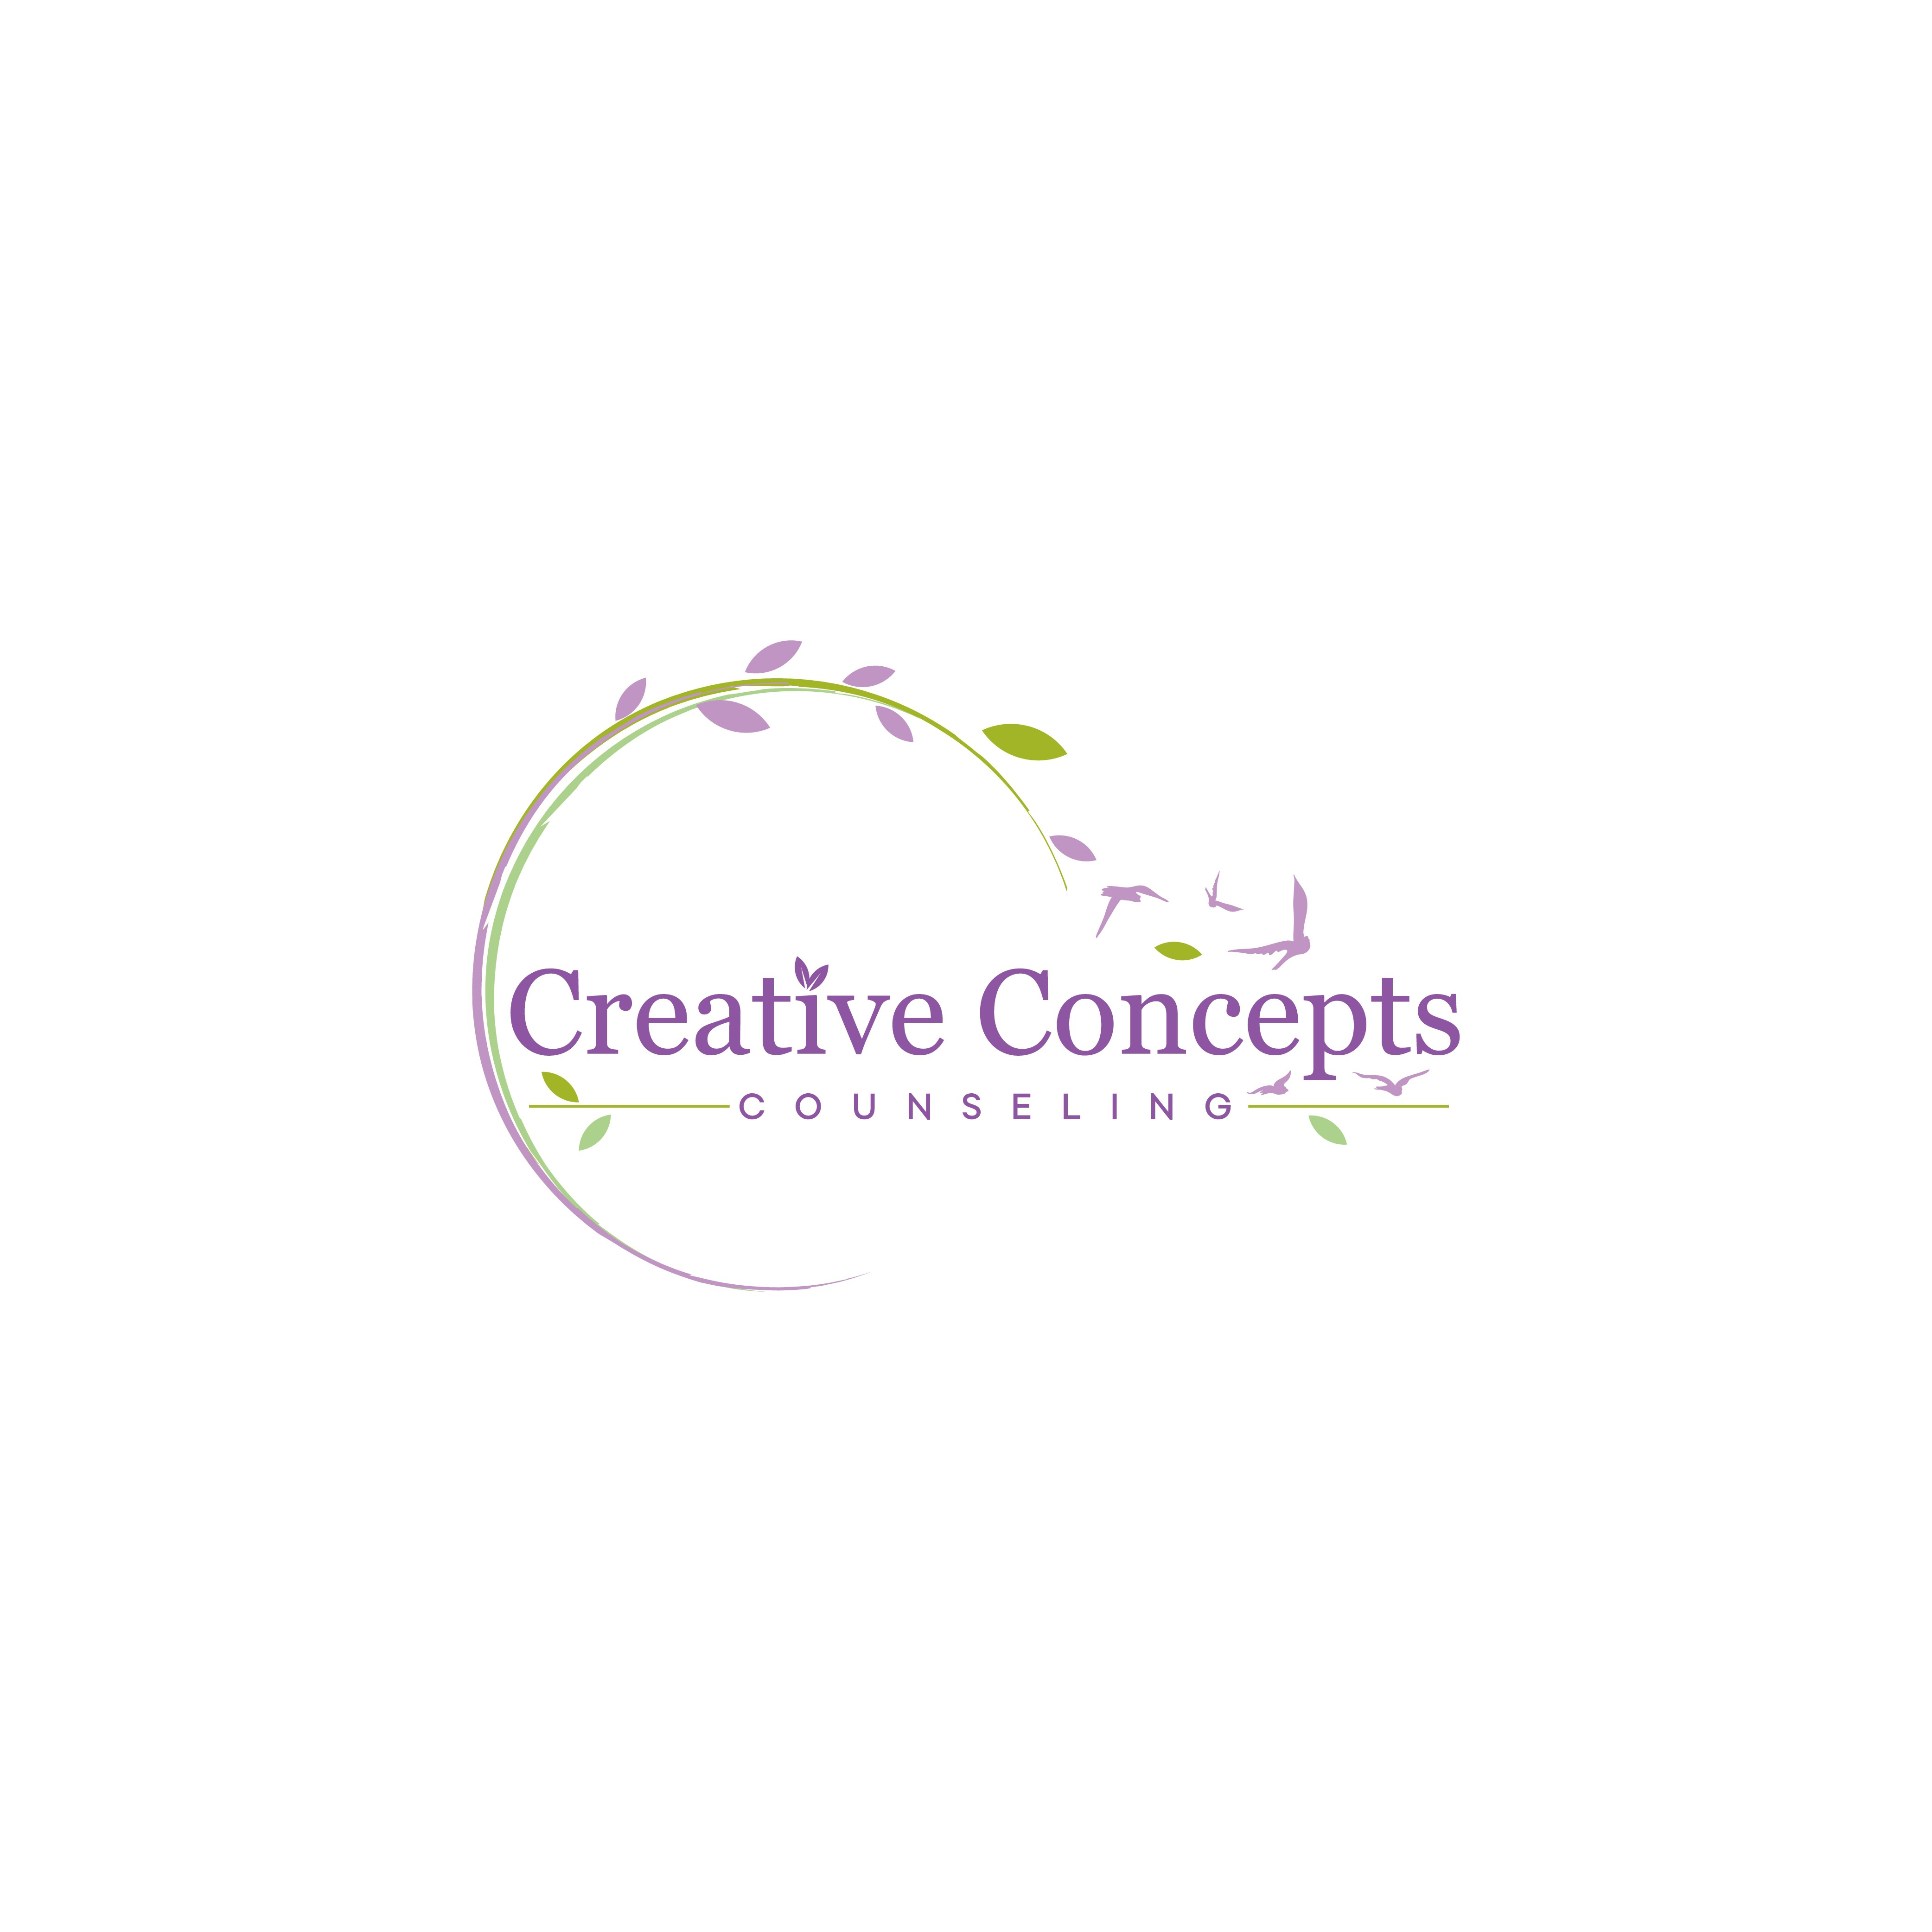 Creative logo wanted for new psychotherapy practice in NY